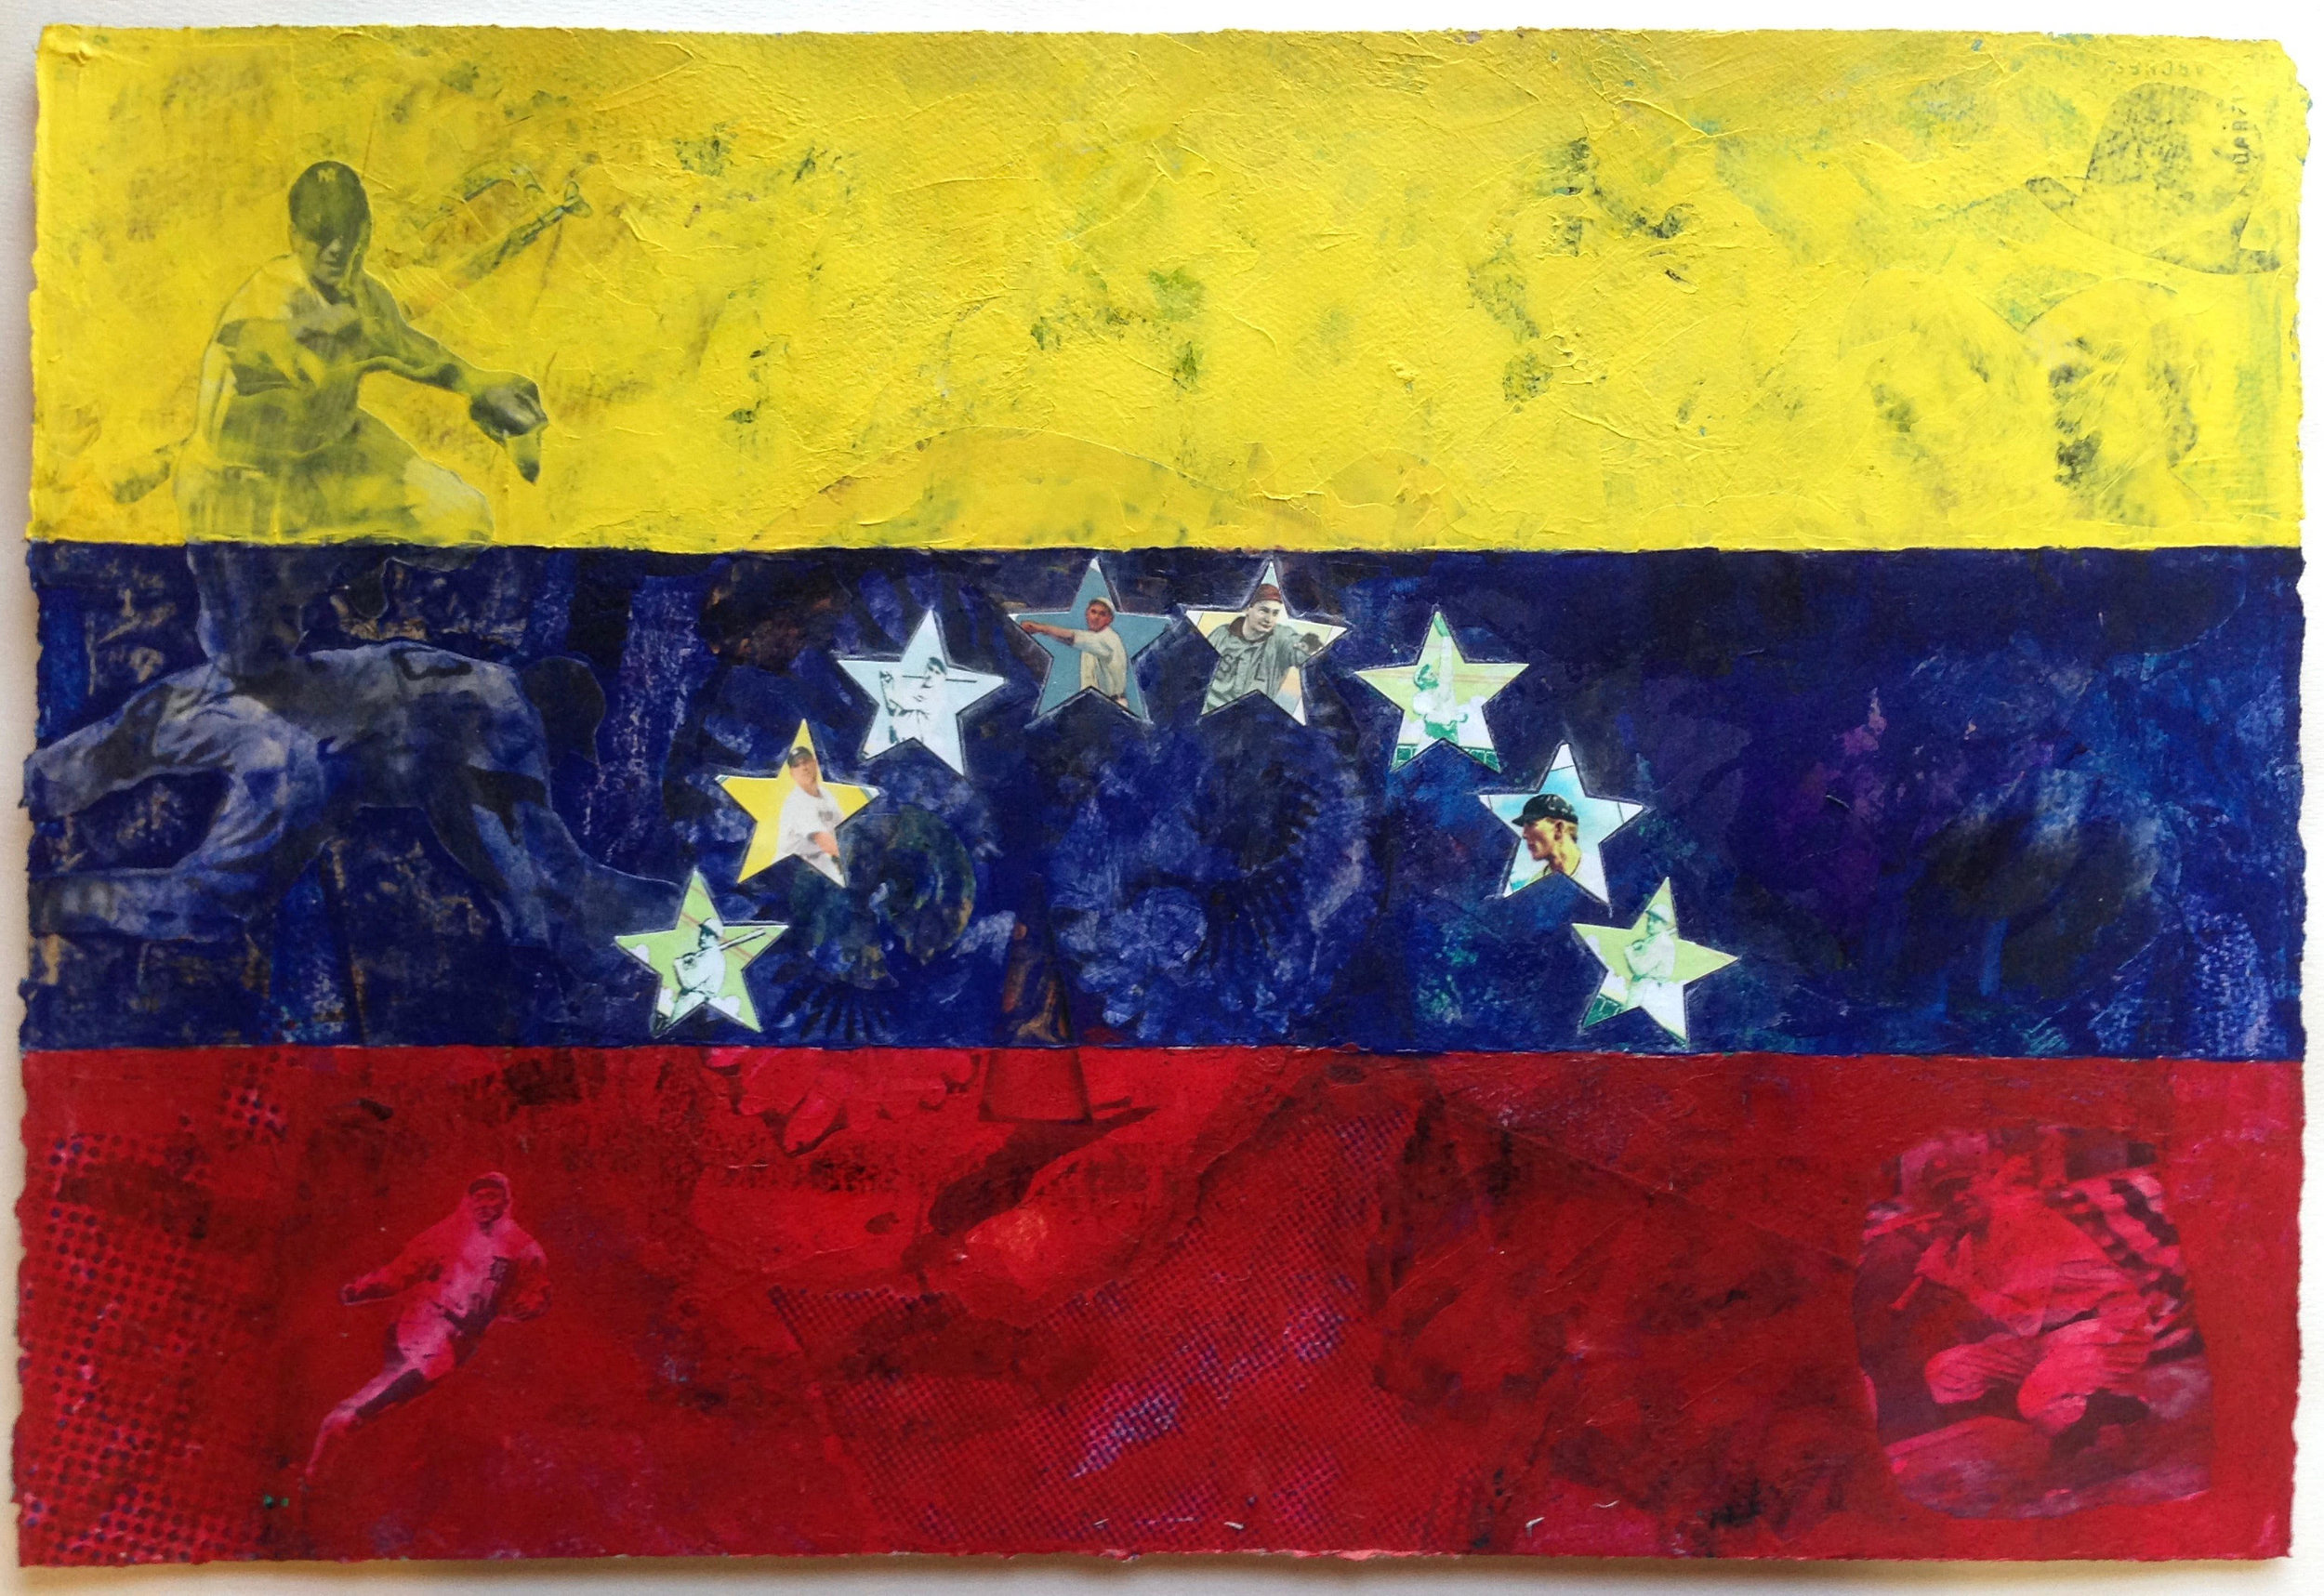 """""""8 Men Out (Venezuela)"""" by Patrick Donley, 19x26in (framed), mixed media on arches (2016)"""